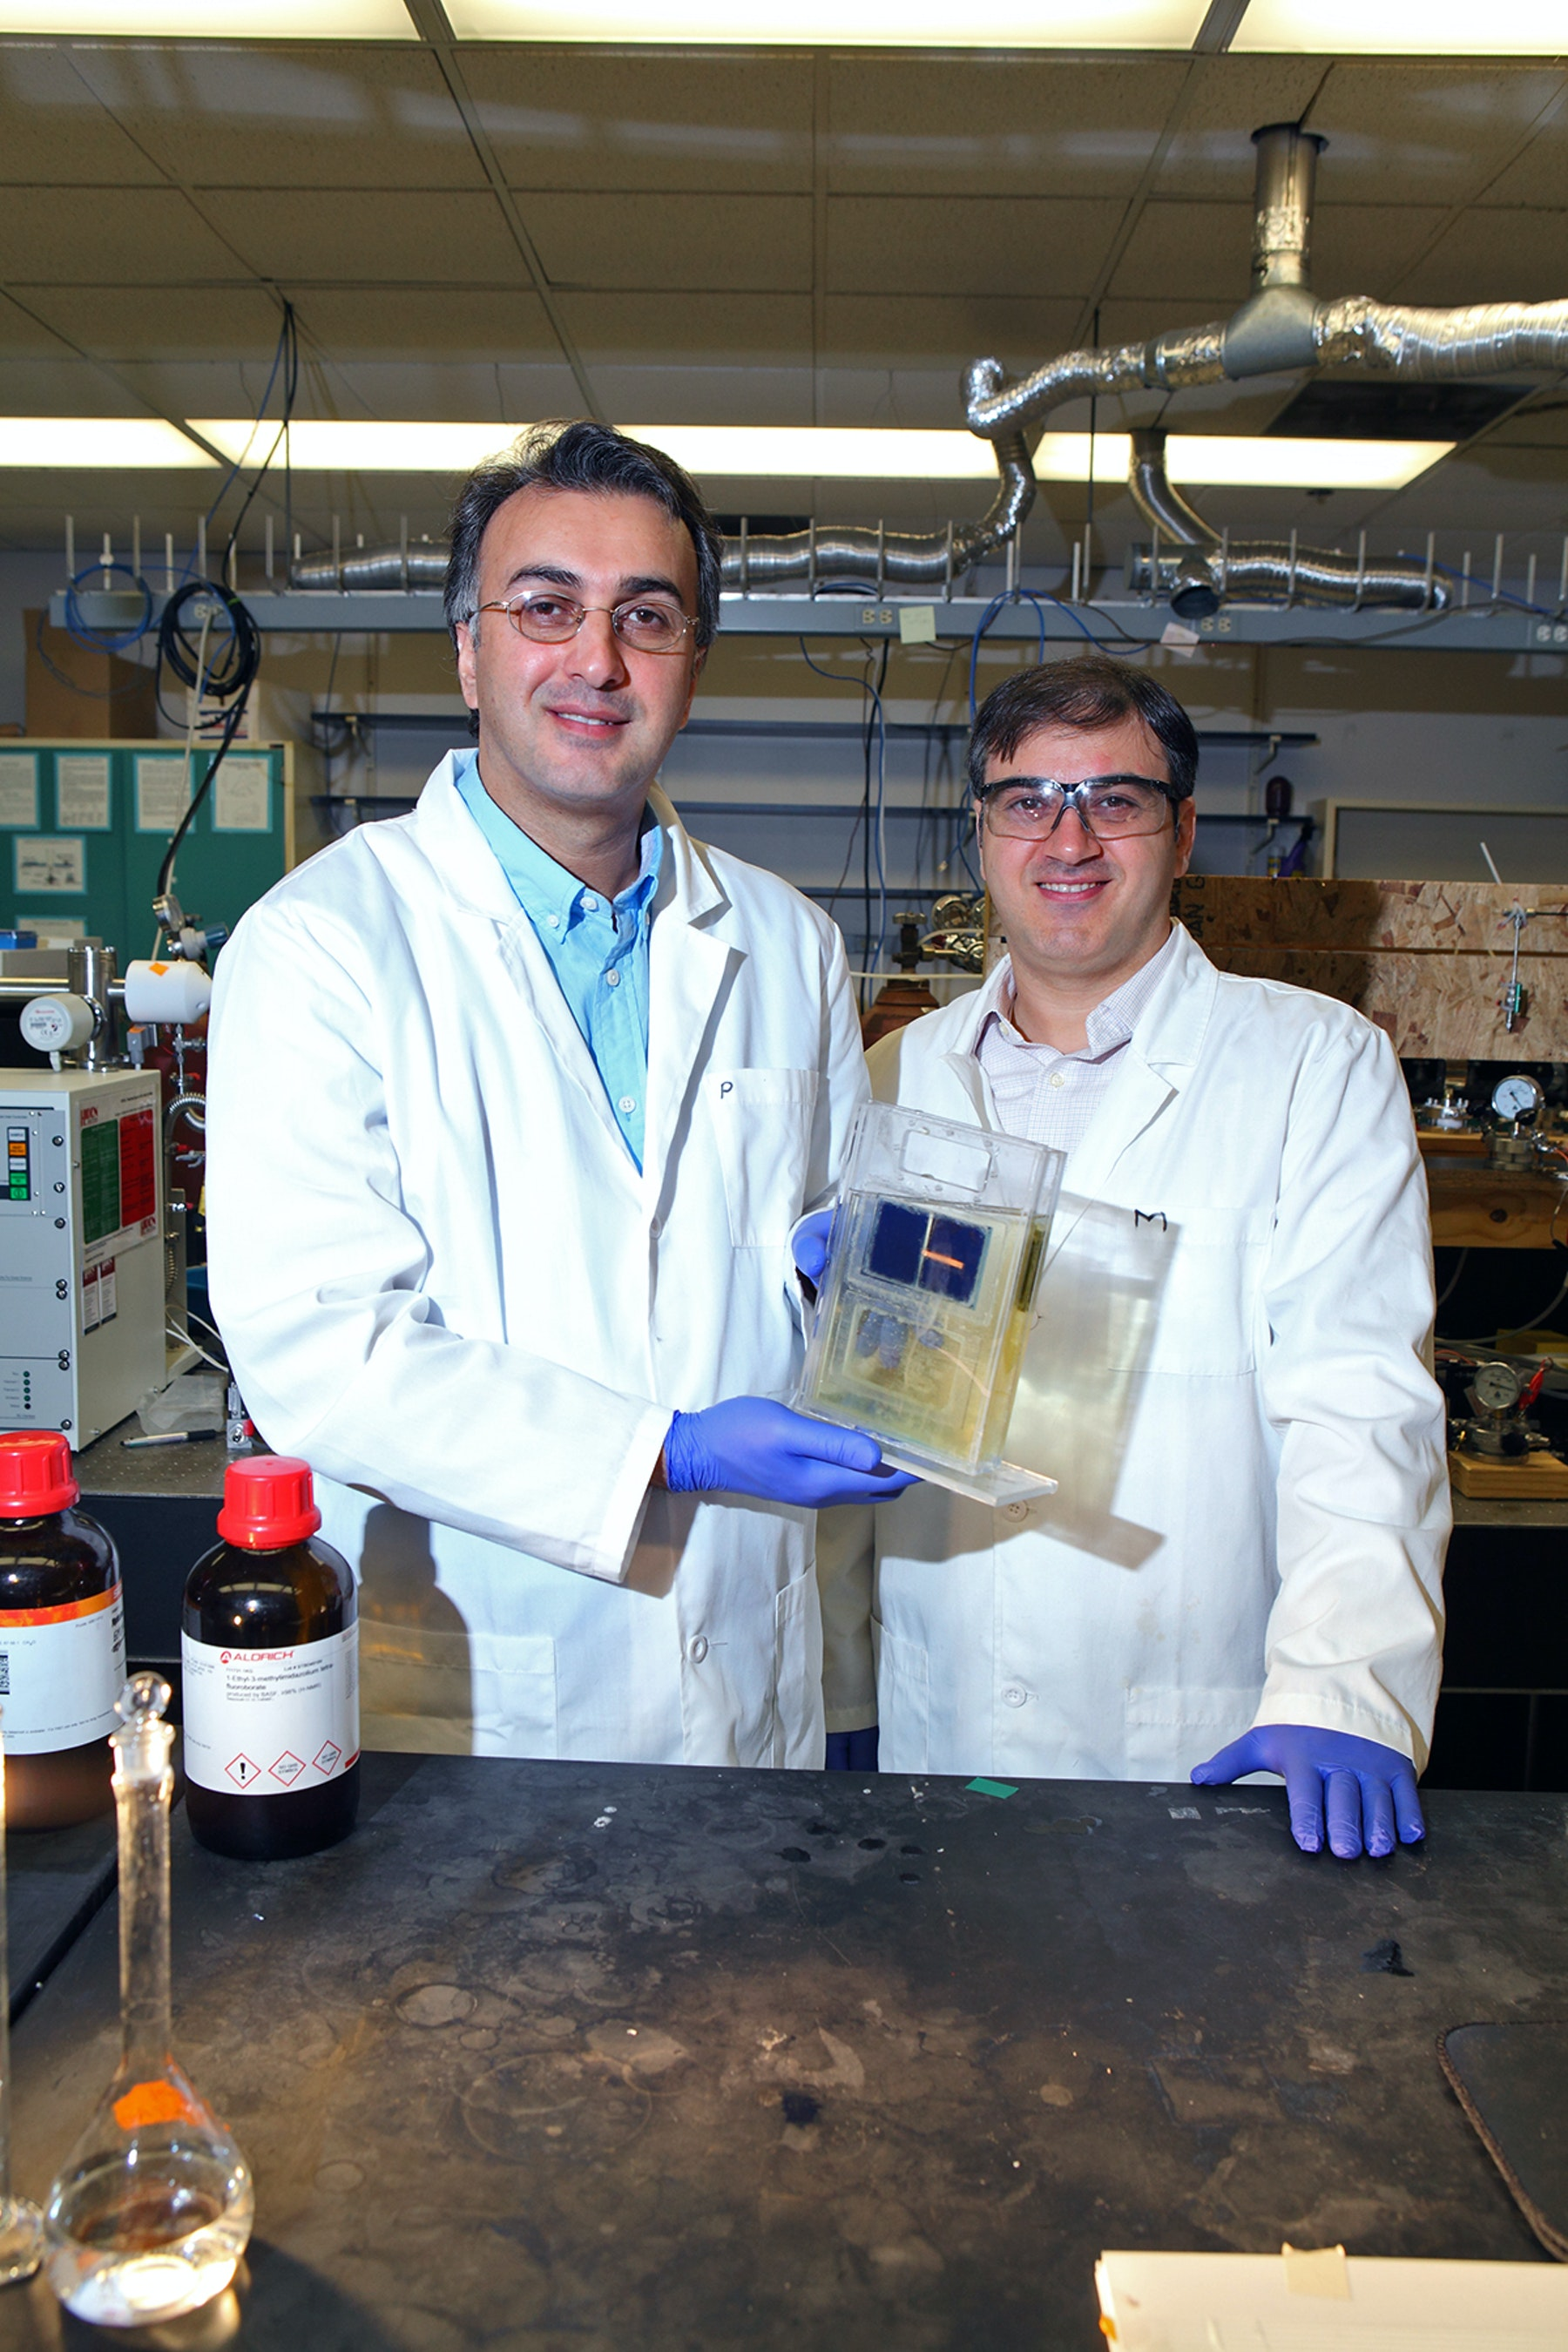 Dr. Amin Salehi-Khojin (left) and postdoctoral researcher Mohammad Asadi with their solar cell.